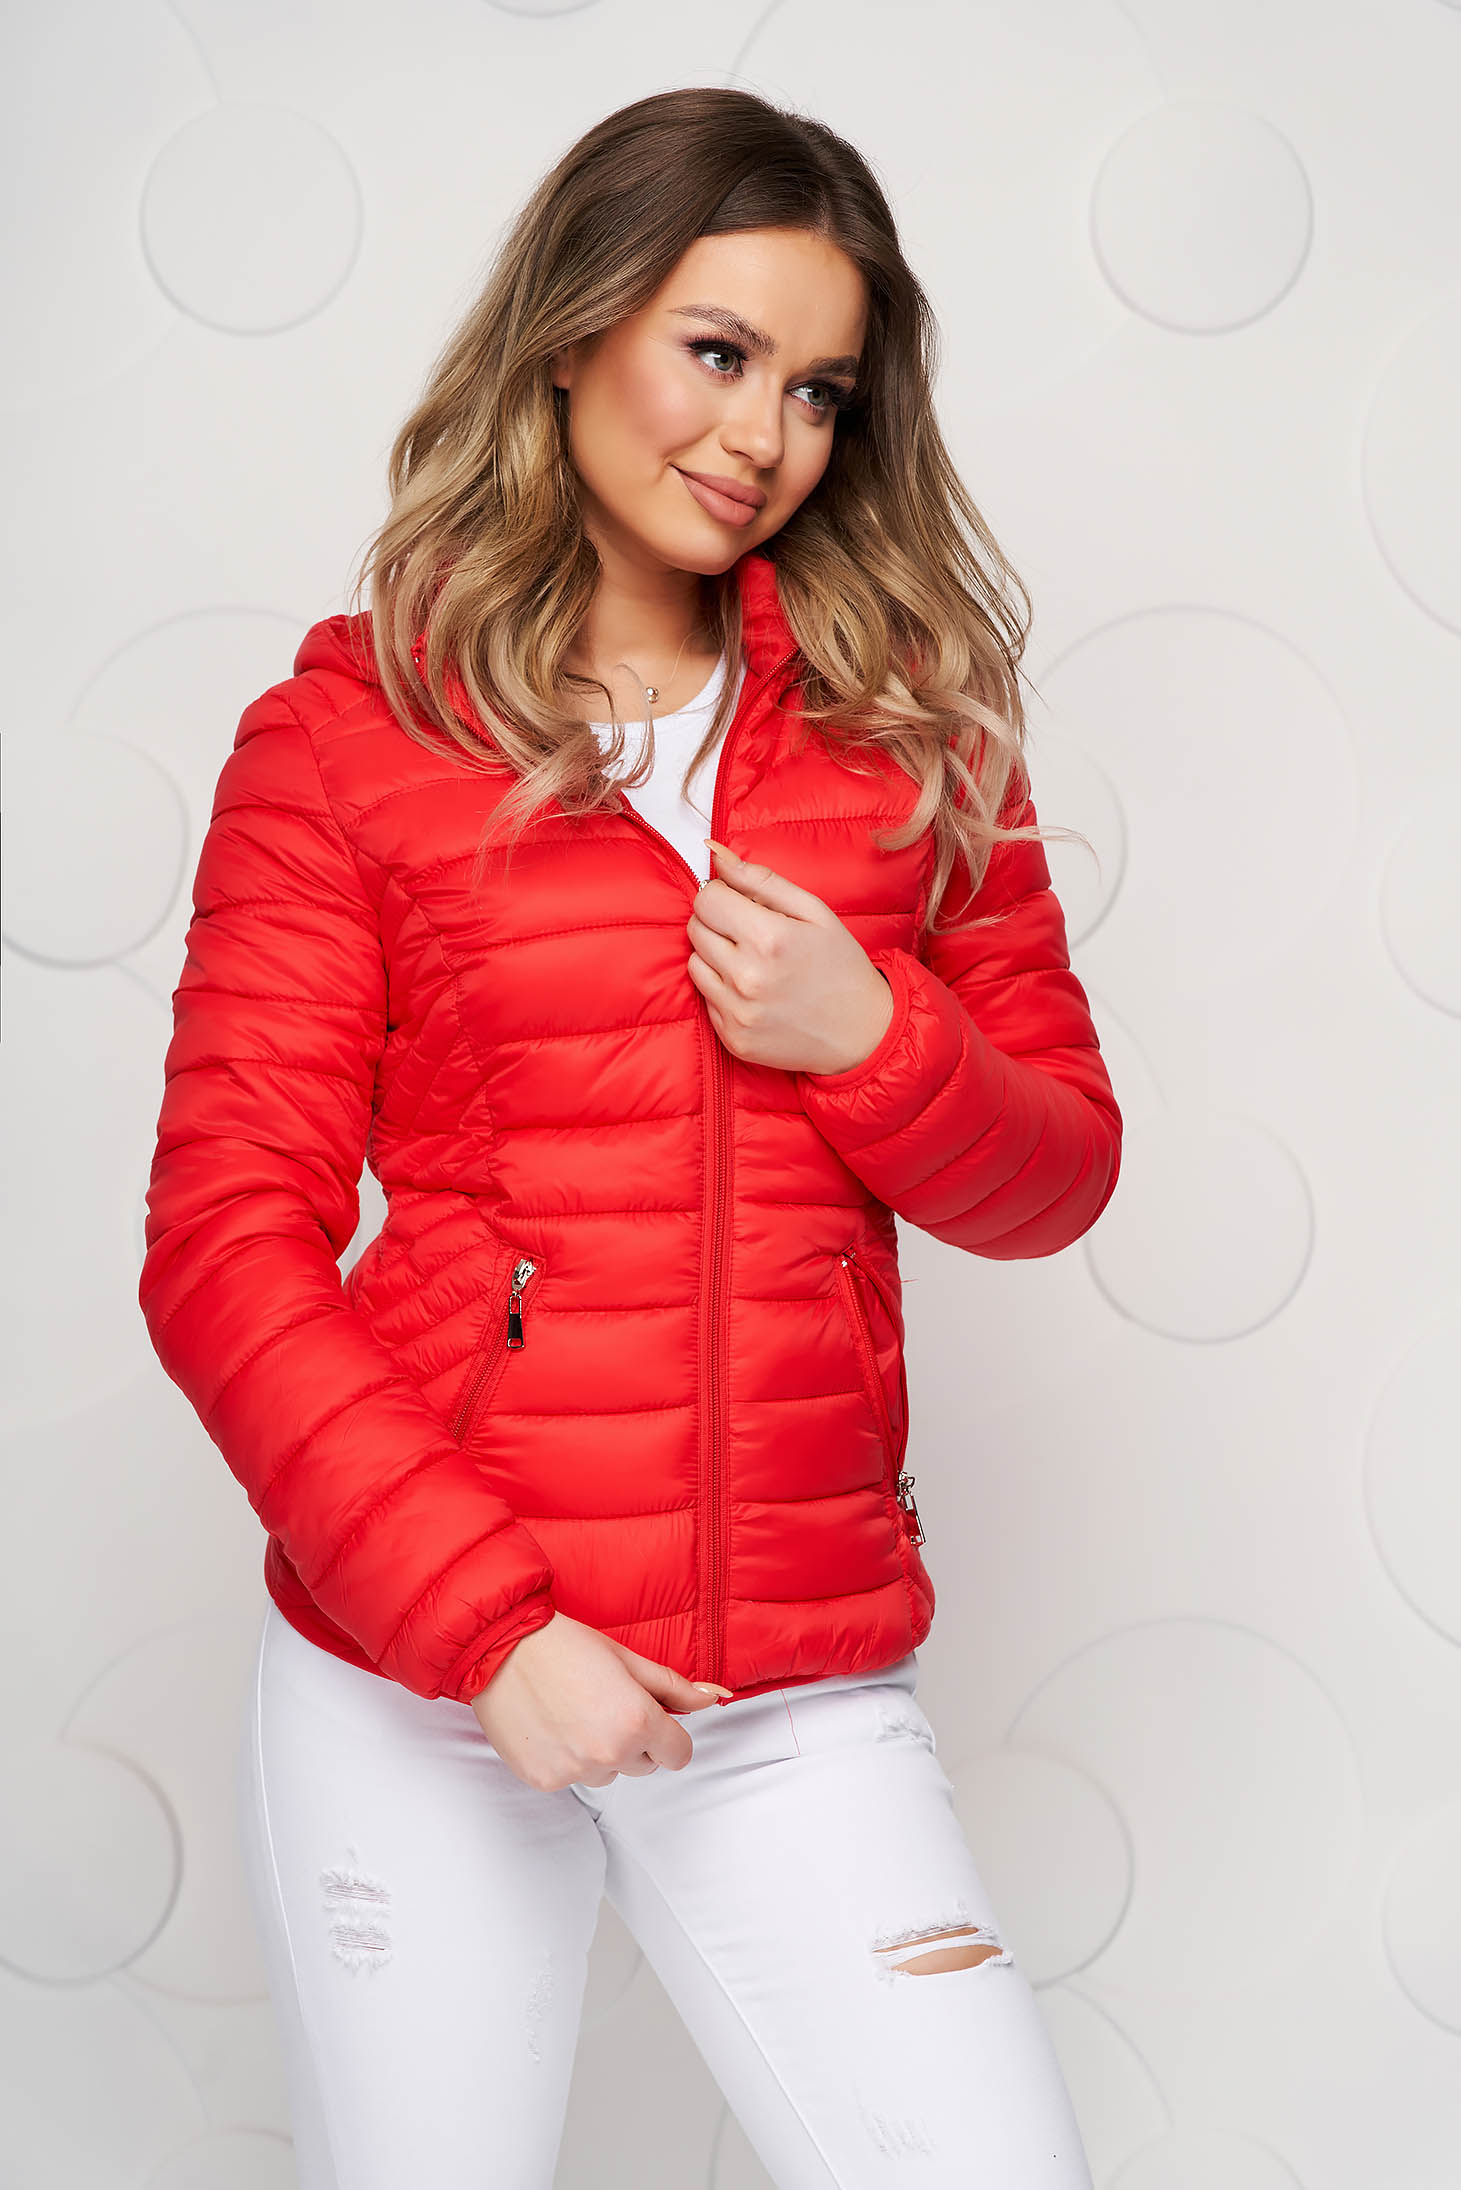 Red jacket slicker fabric casual with front pockets